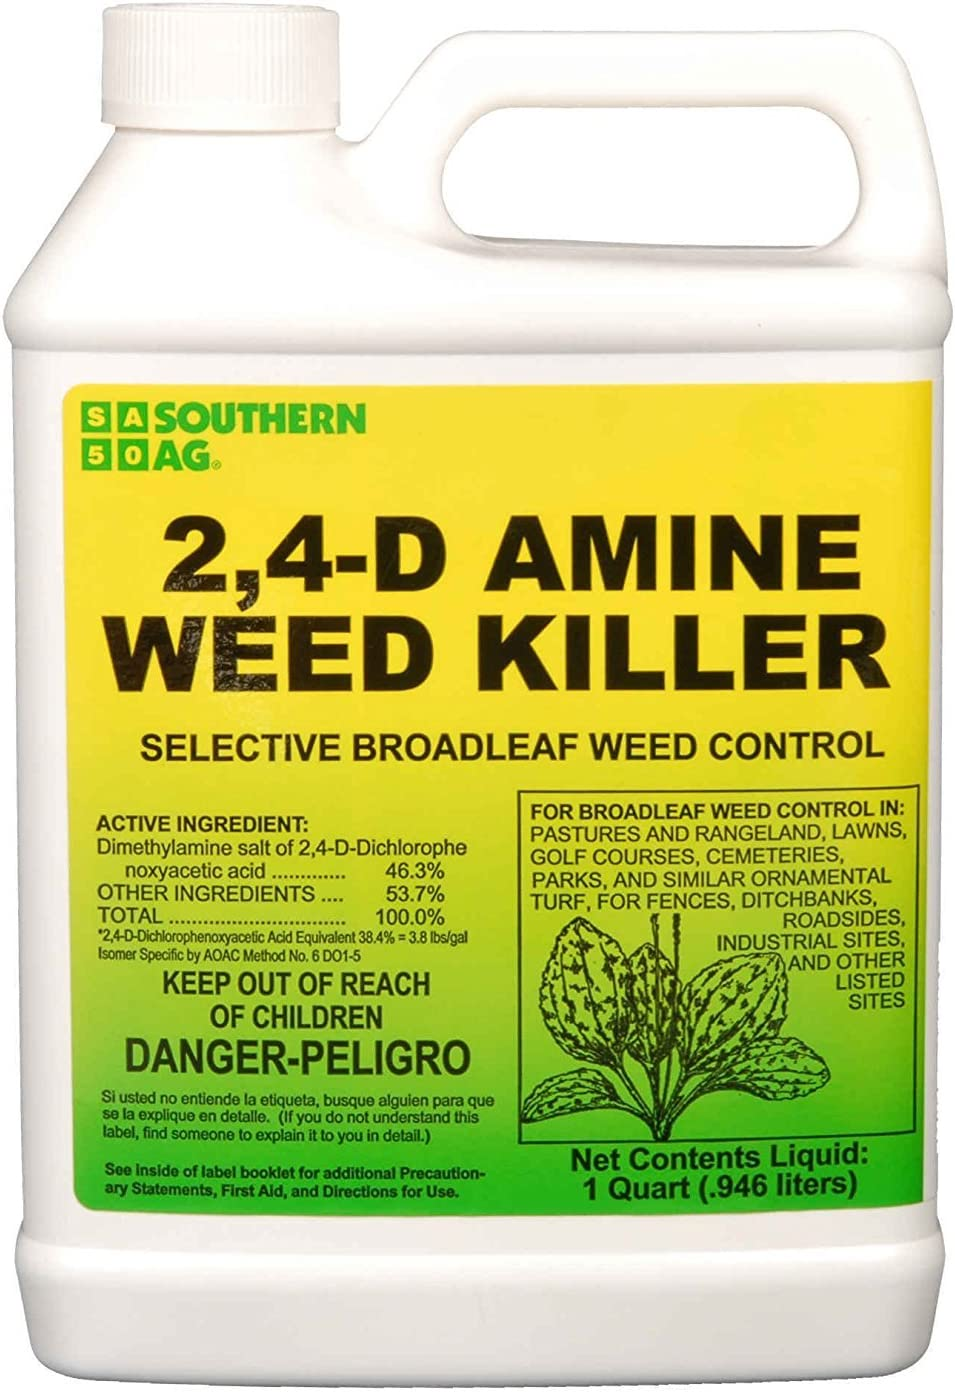 Southern AG Amine 2,4-D Weed Killer